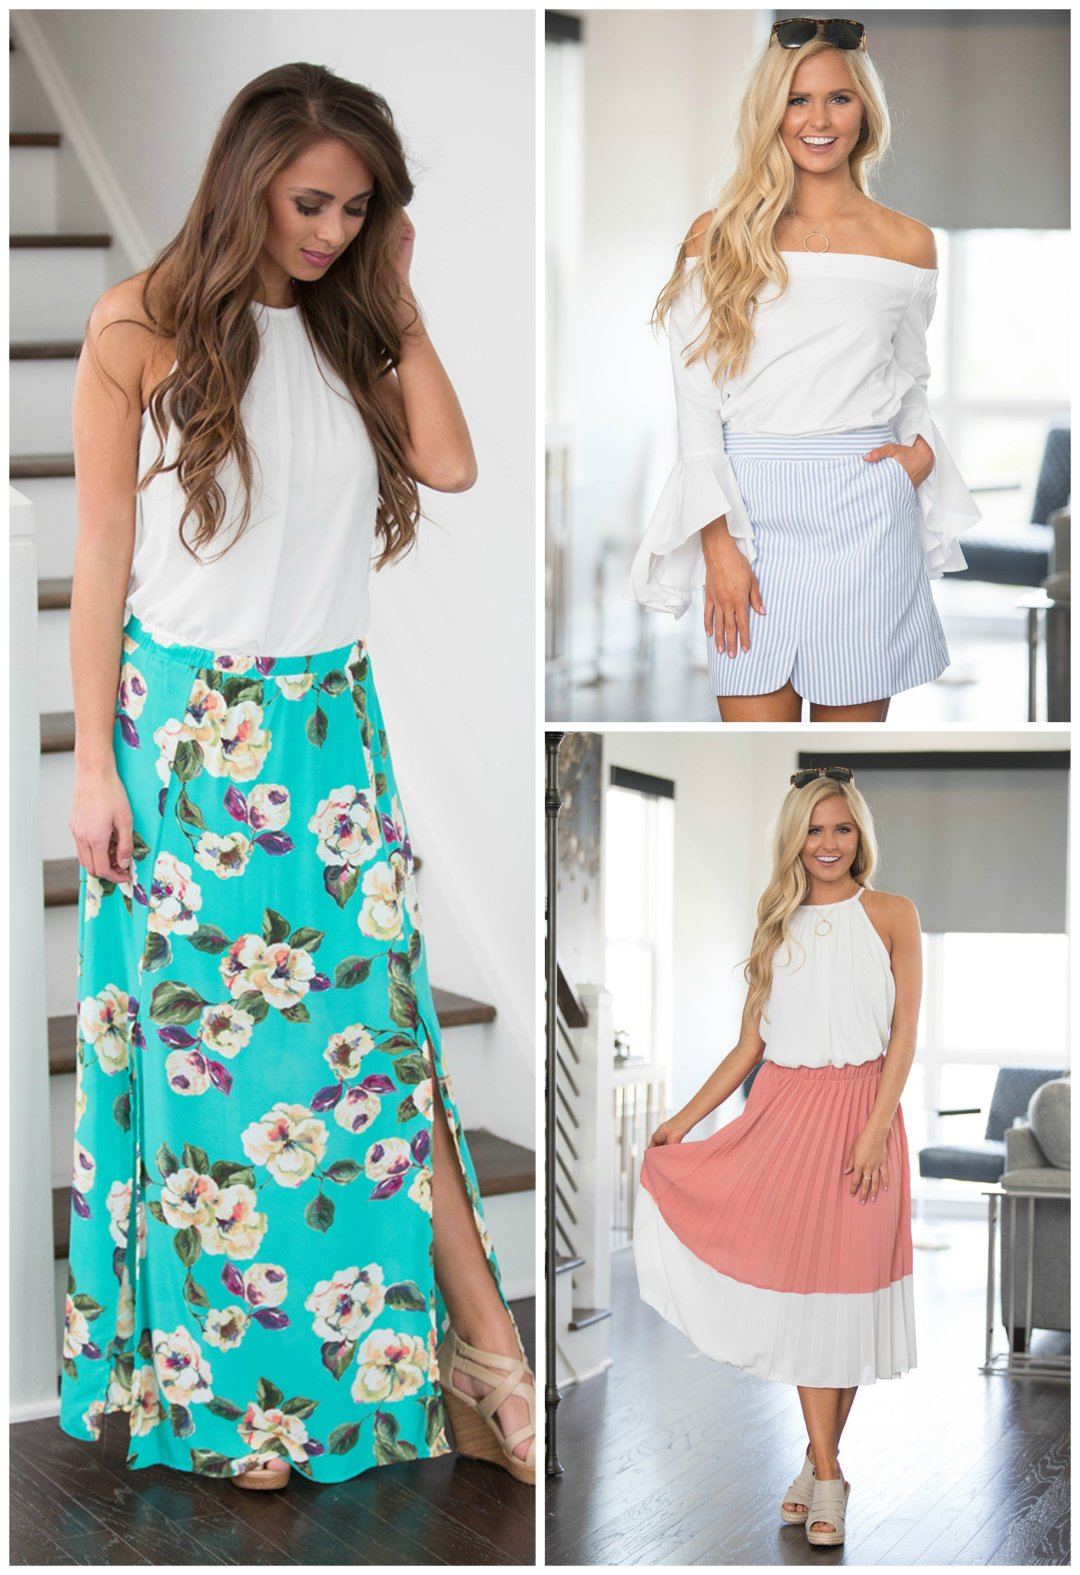 cute outfits for Easter